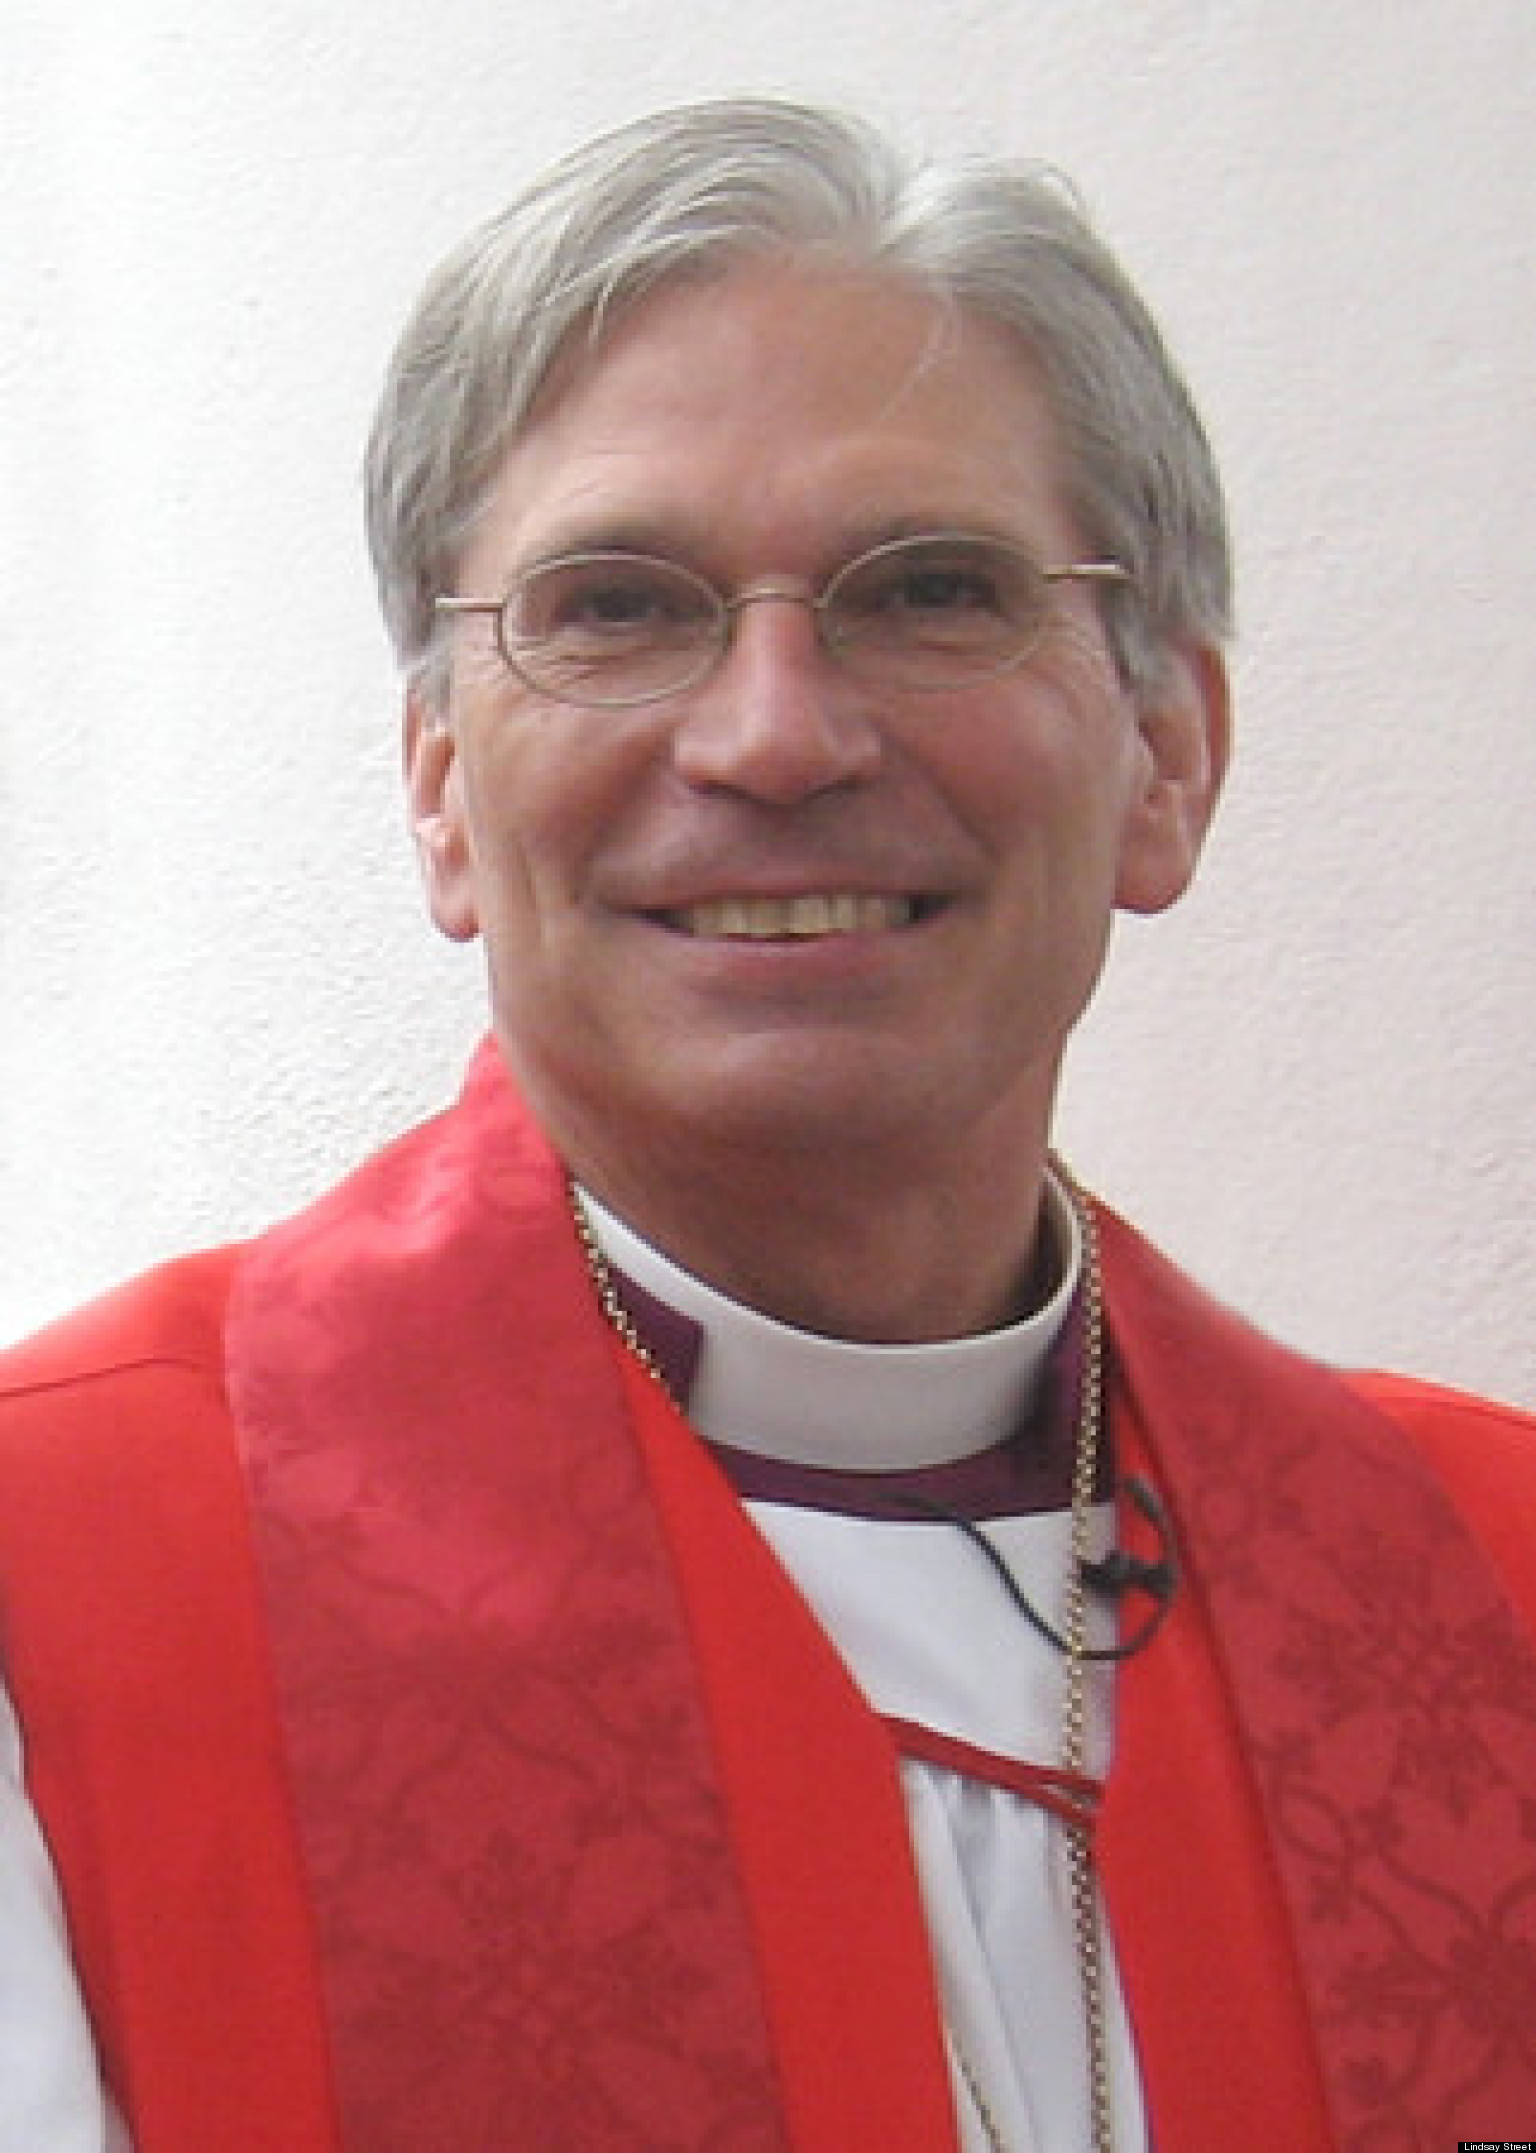 https://i1.wp.com/i.huffpost.com/gen/825484/thumbs/o-BISHOP-MARK-LAWRENCE-facebook.jpg